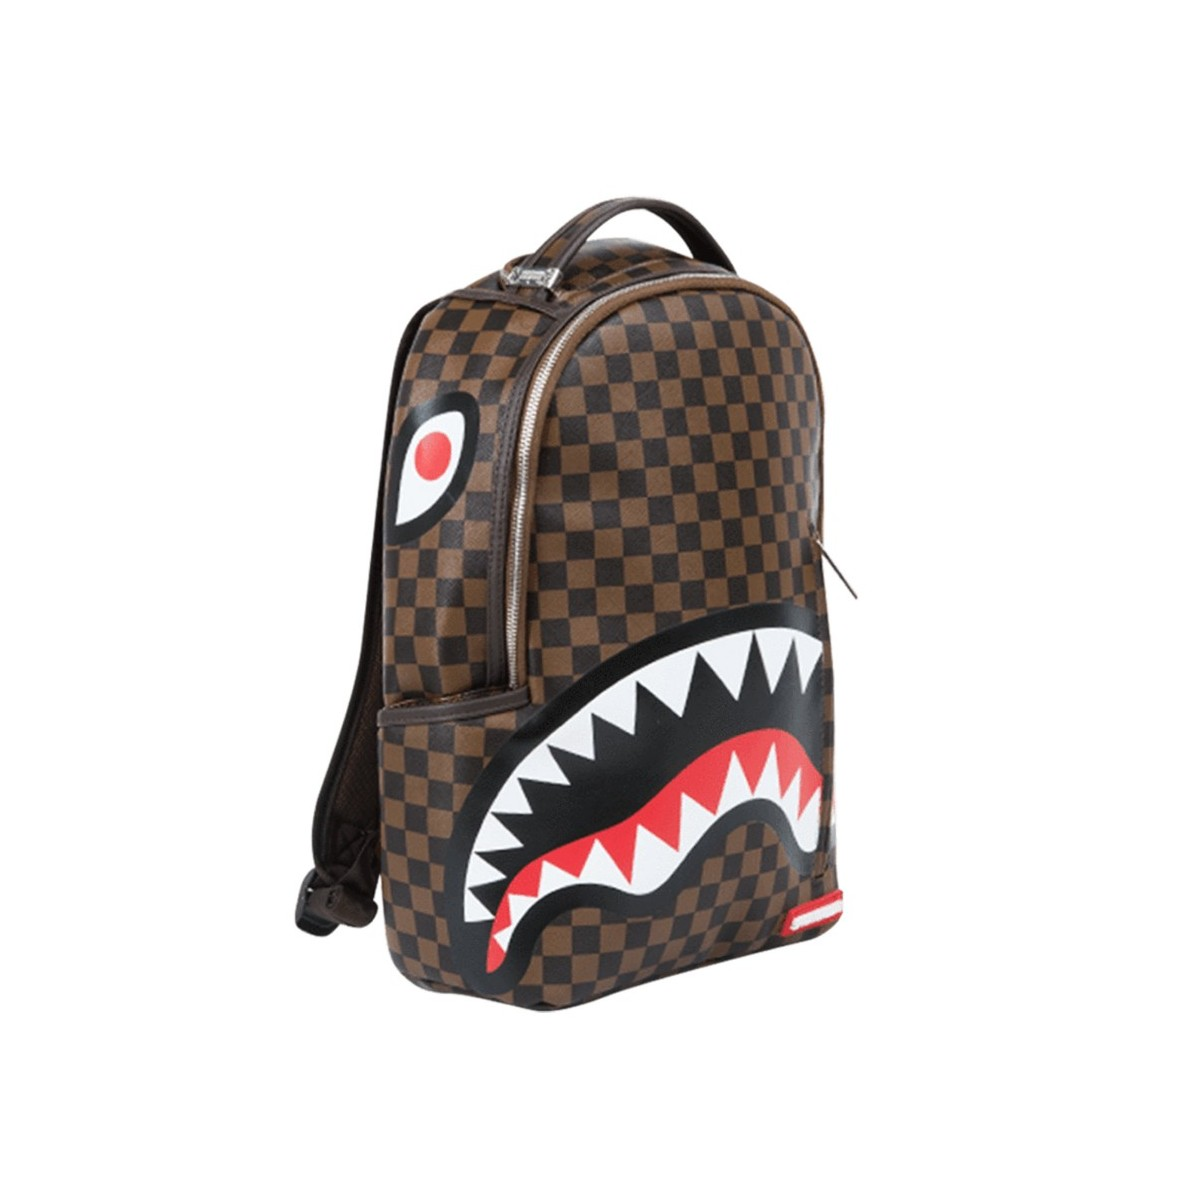 Zaino - Sharks in paris brown